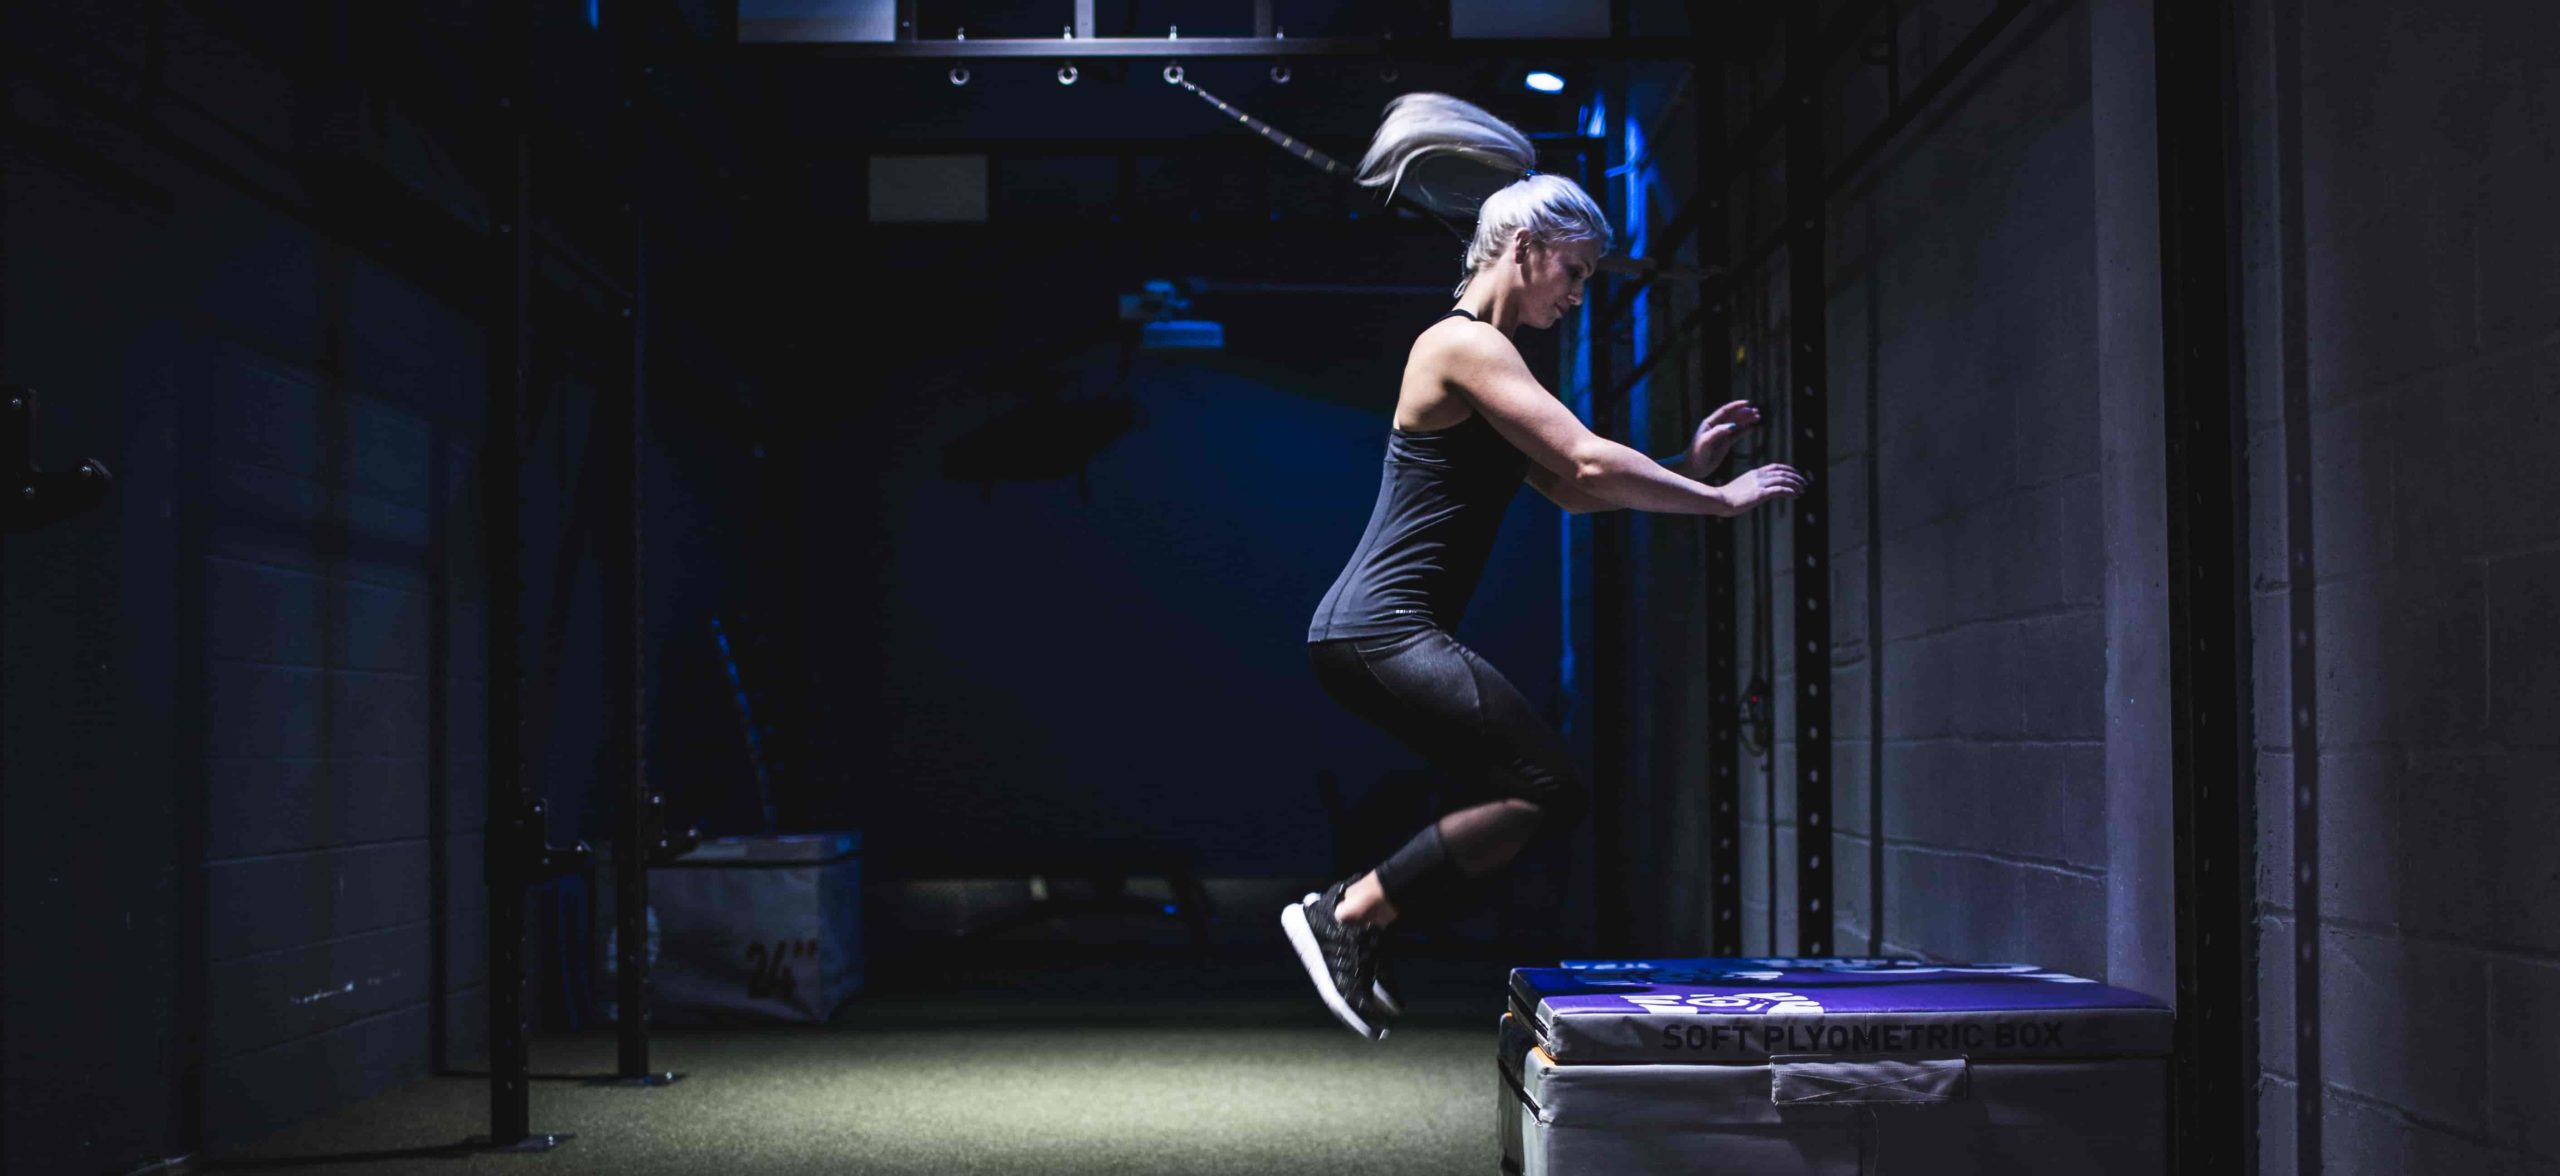 What are the benefits of logging your workouts?